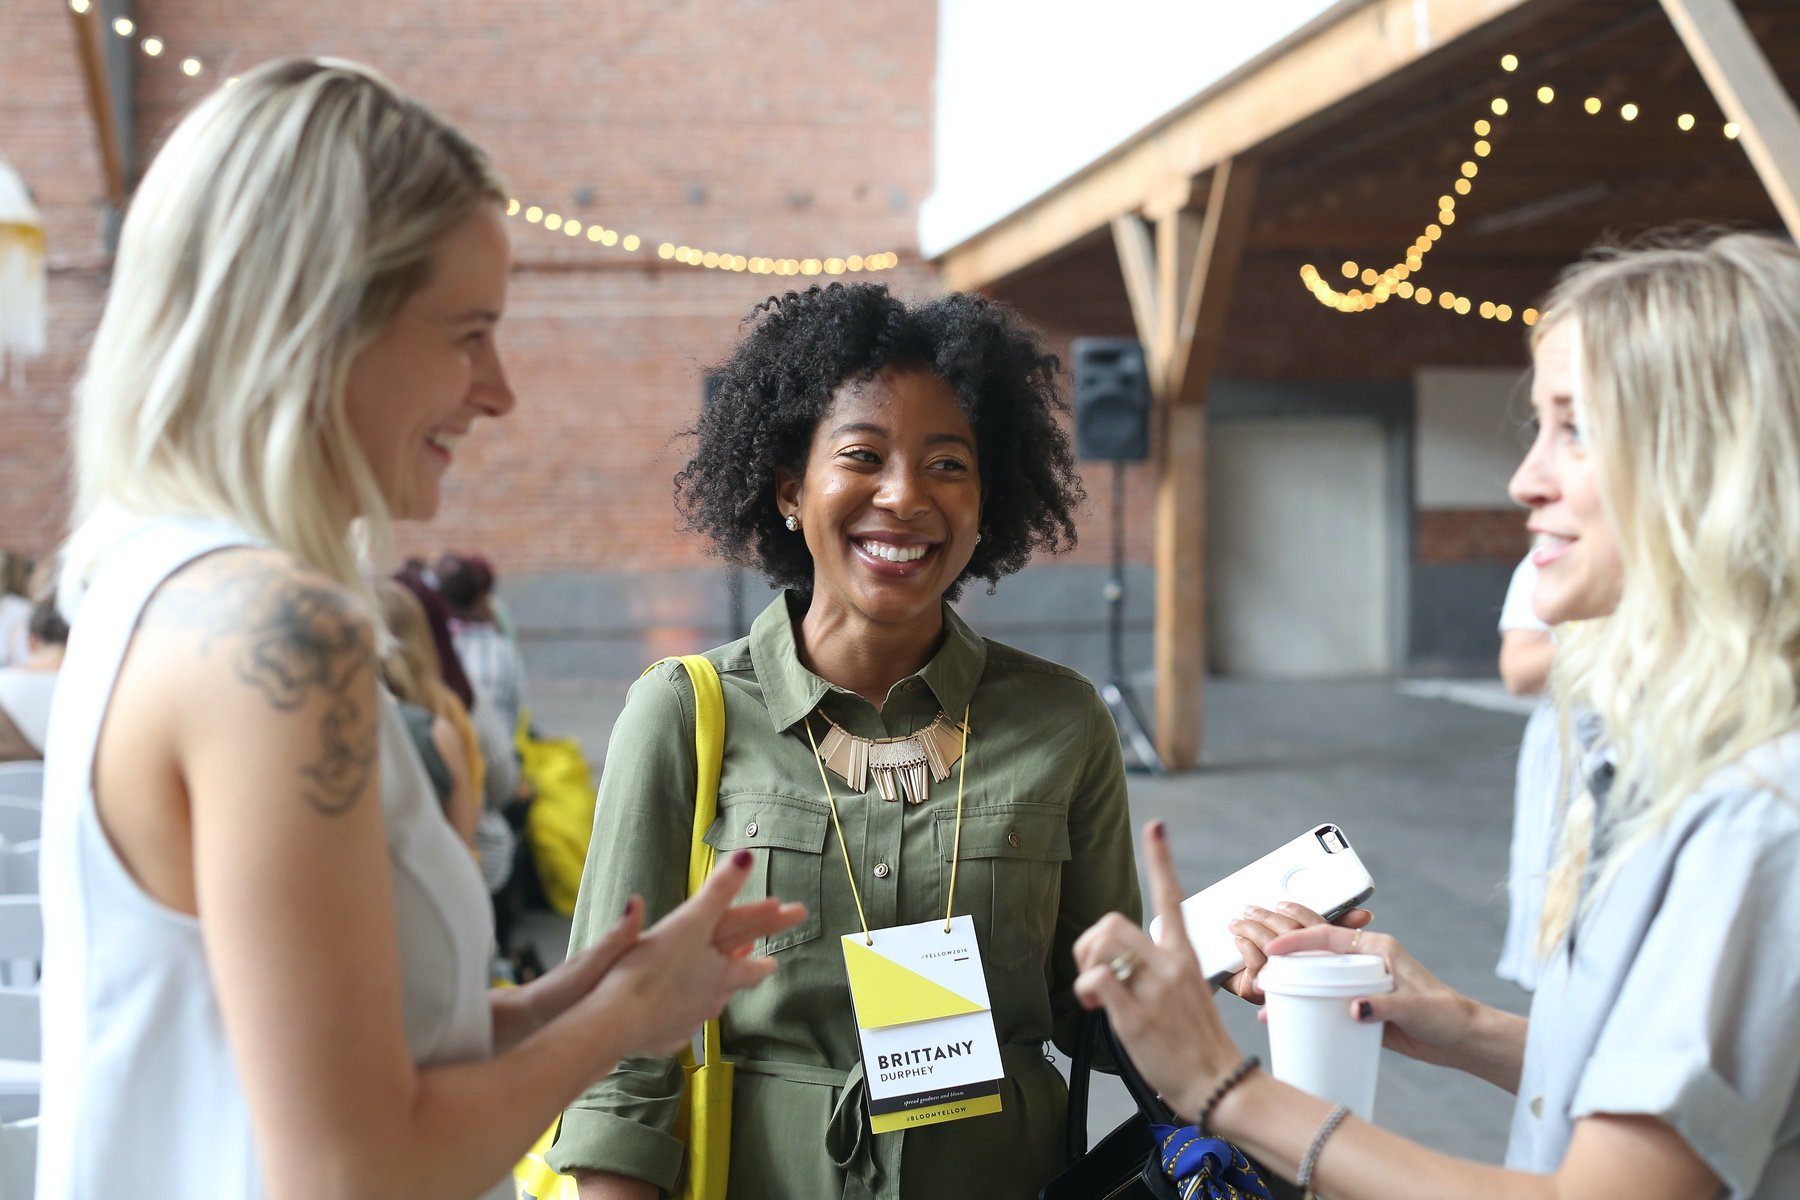 How to Network as an Introvert - The Yellow Room